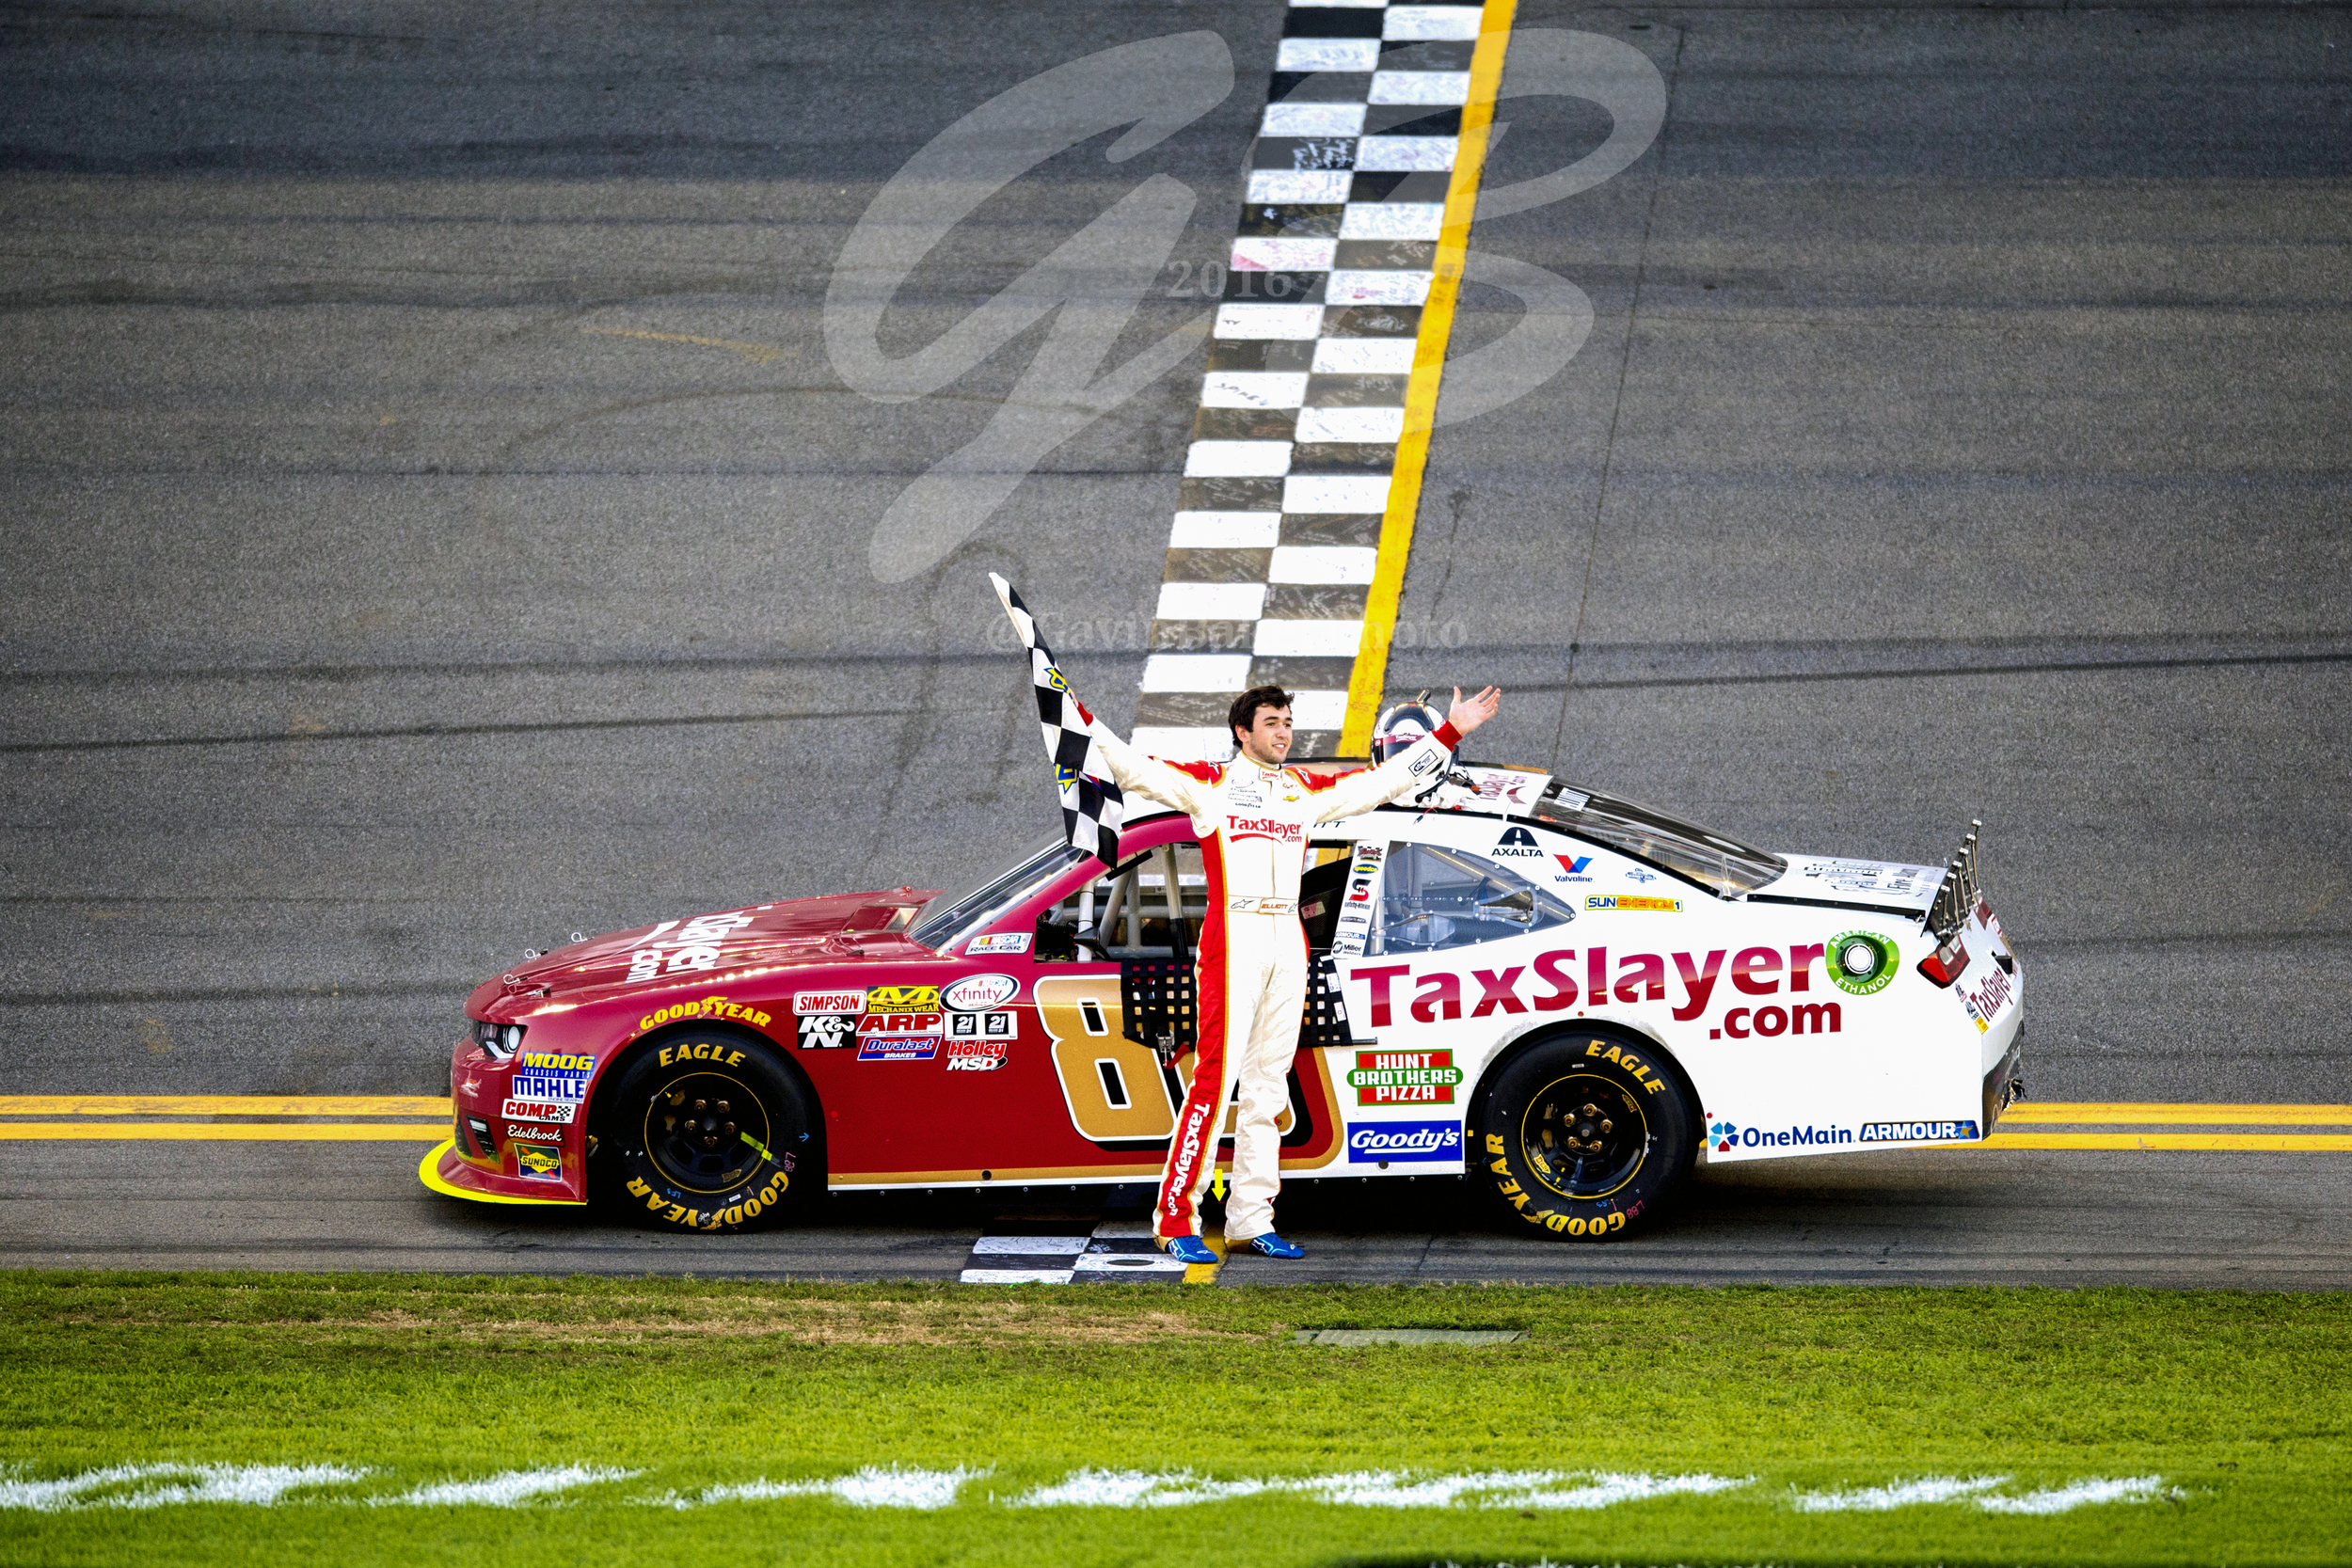 Chase Elliott stands in front of the TaxSlayer.com Chevy on the start / finish line celebrating his victory in the Xfinity race. Chase's race car had run out of fuel and had to be pushed back to Victory Lane.